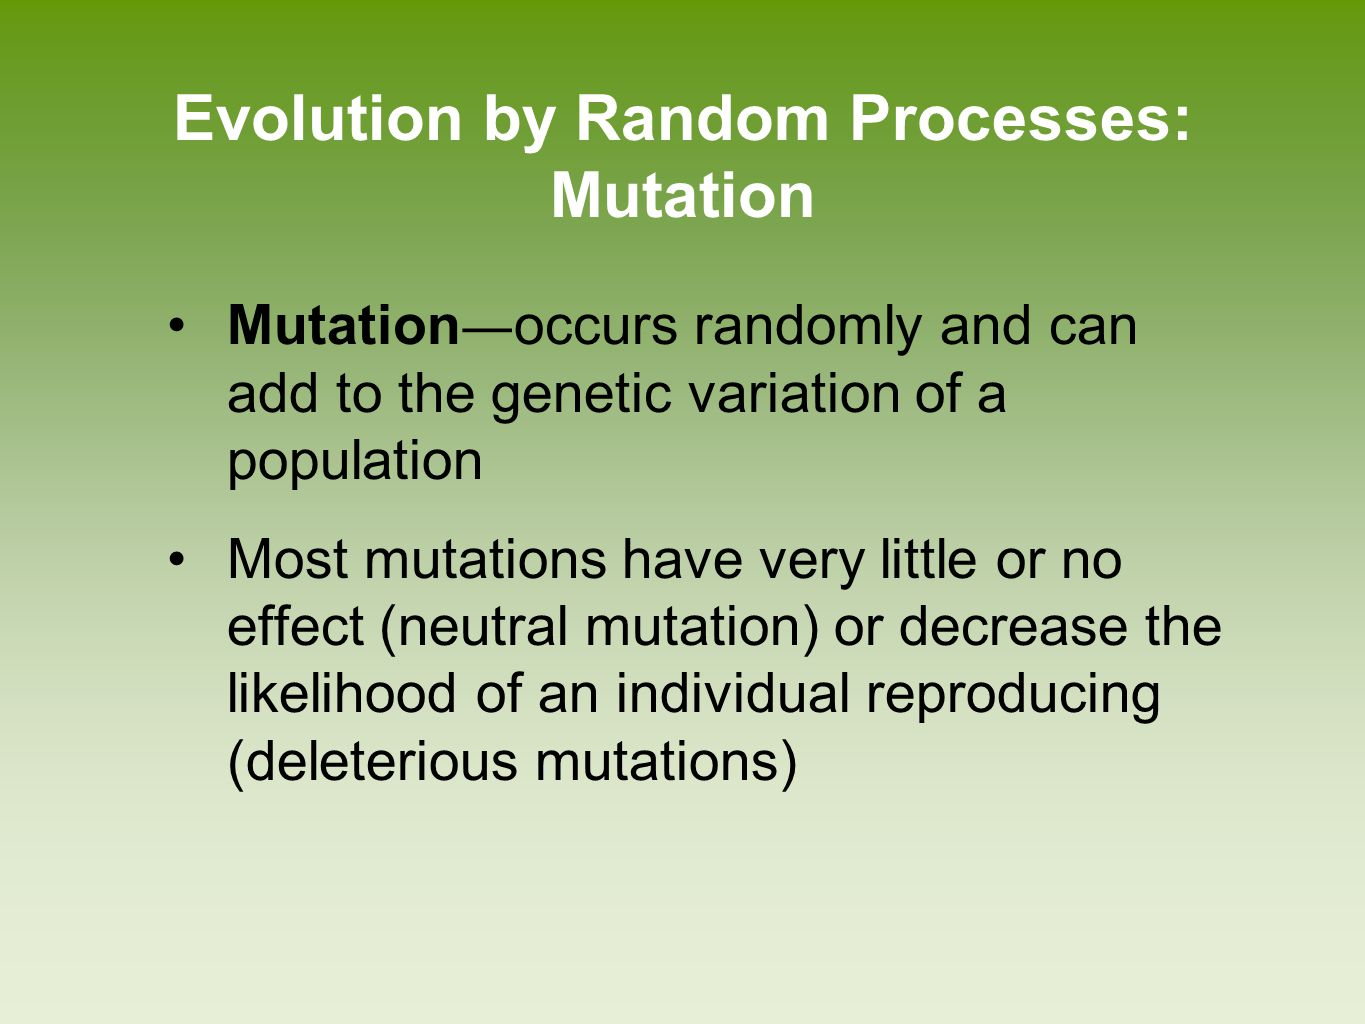 Evolution by Random Processes: Genetic drift Genetic drift ― change in the genetic composition of a population over time as a result of random mating